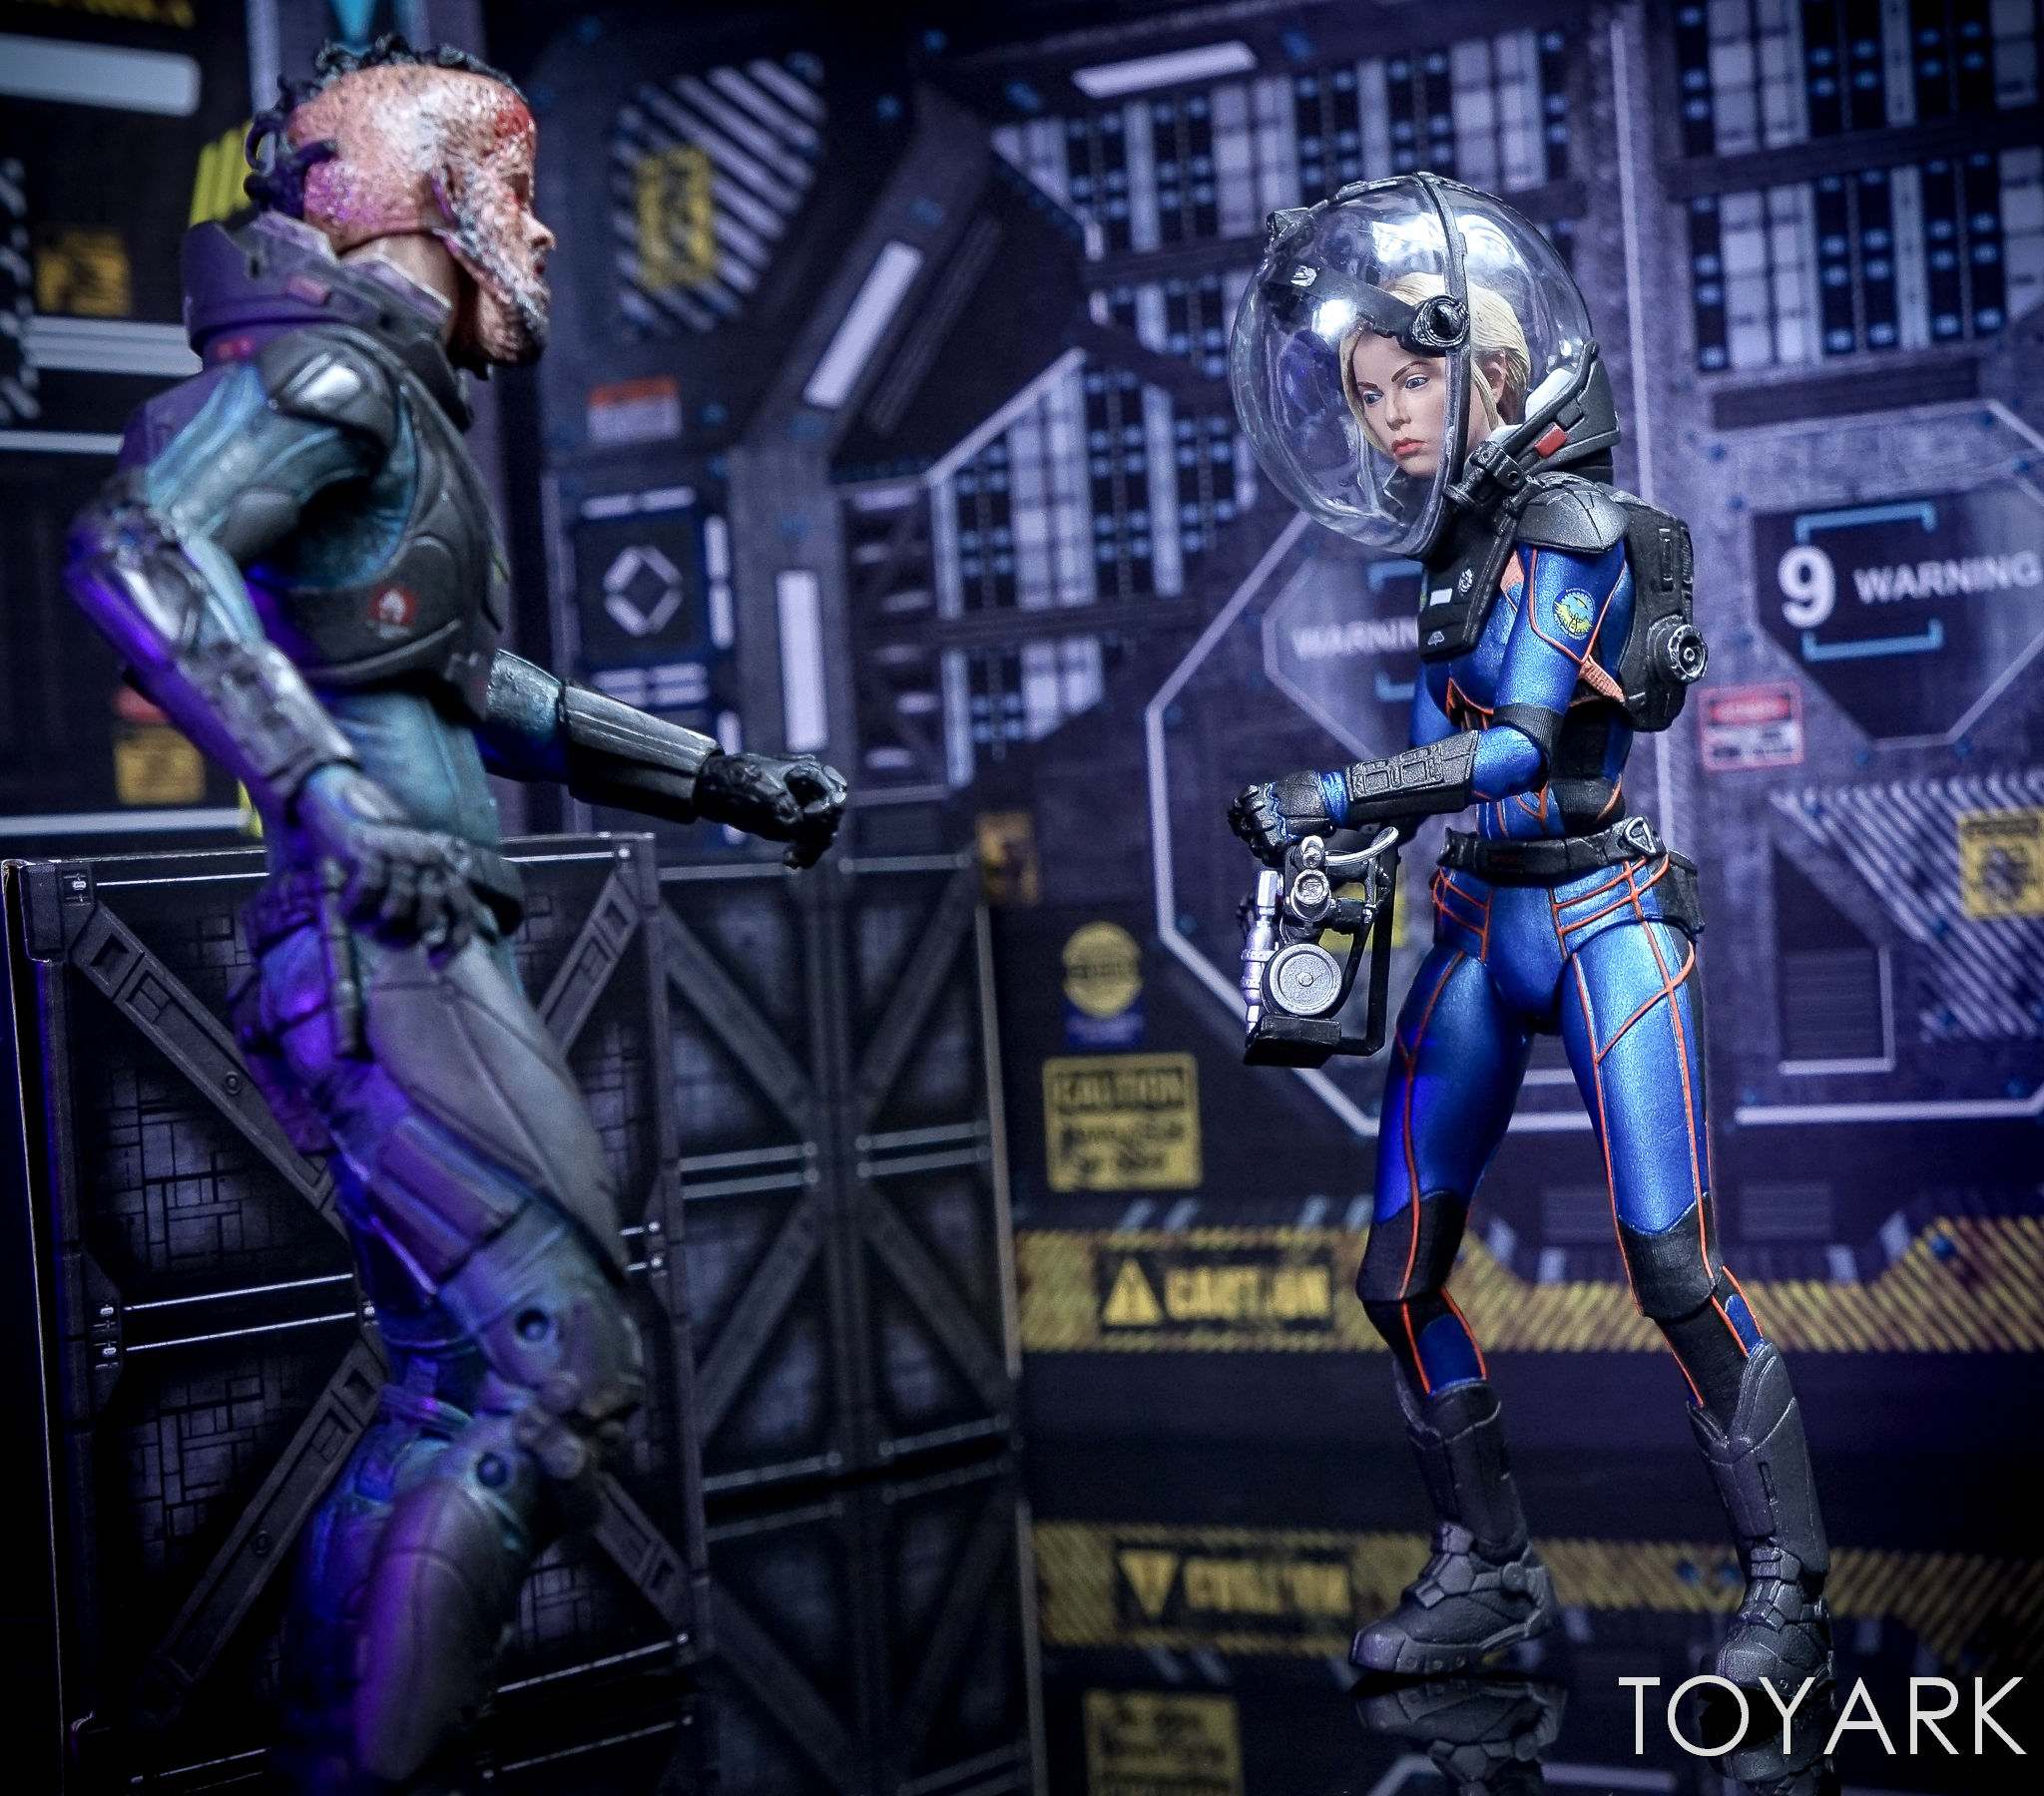 http://news.toyark.com/wp-content/uploads/sites/4/2017/06/NECA-Prometheus-Lost-Wave-069.jpg